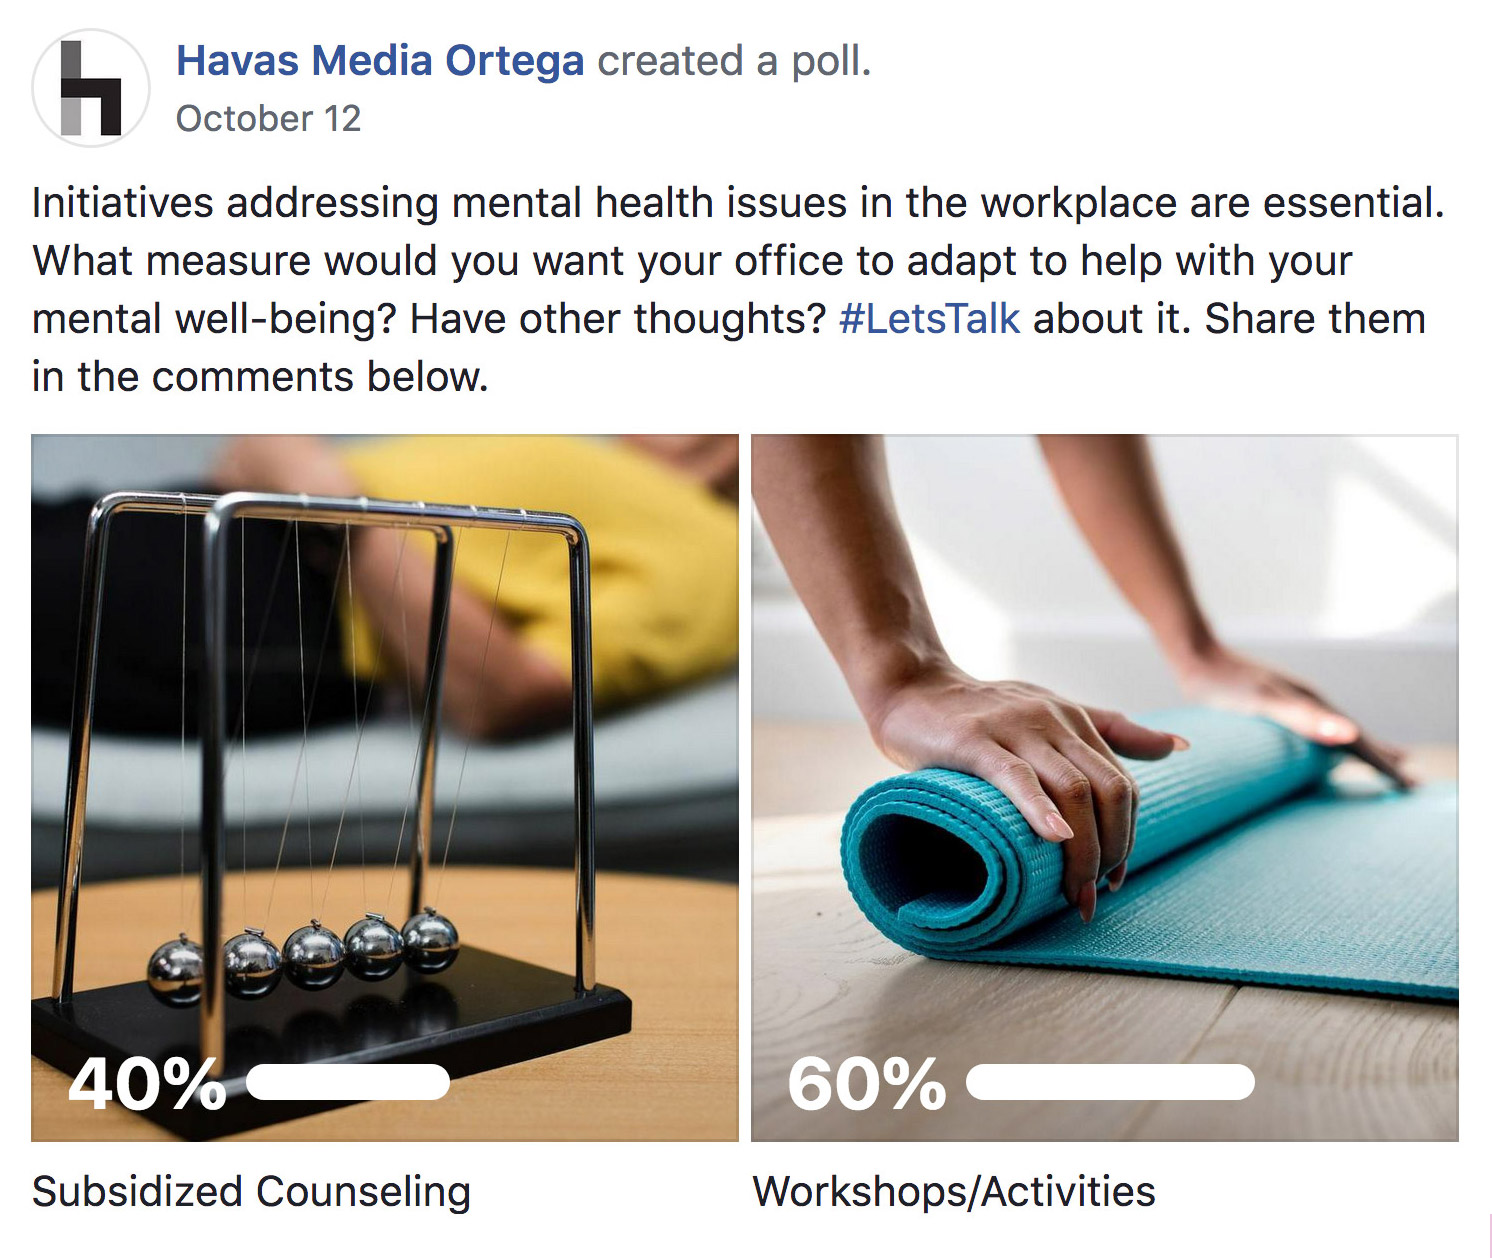 A screenshot of a Facebook poll asking: What measure would you want your office to adapt to help with your mental well-being. Out of the two choices, 40% say subsidized counseling, while 60% say workshop/activities.